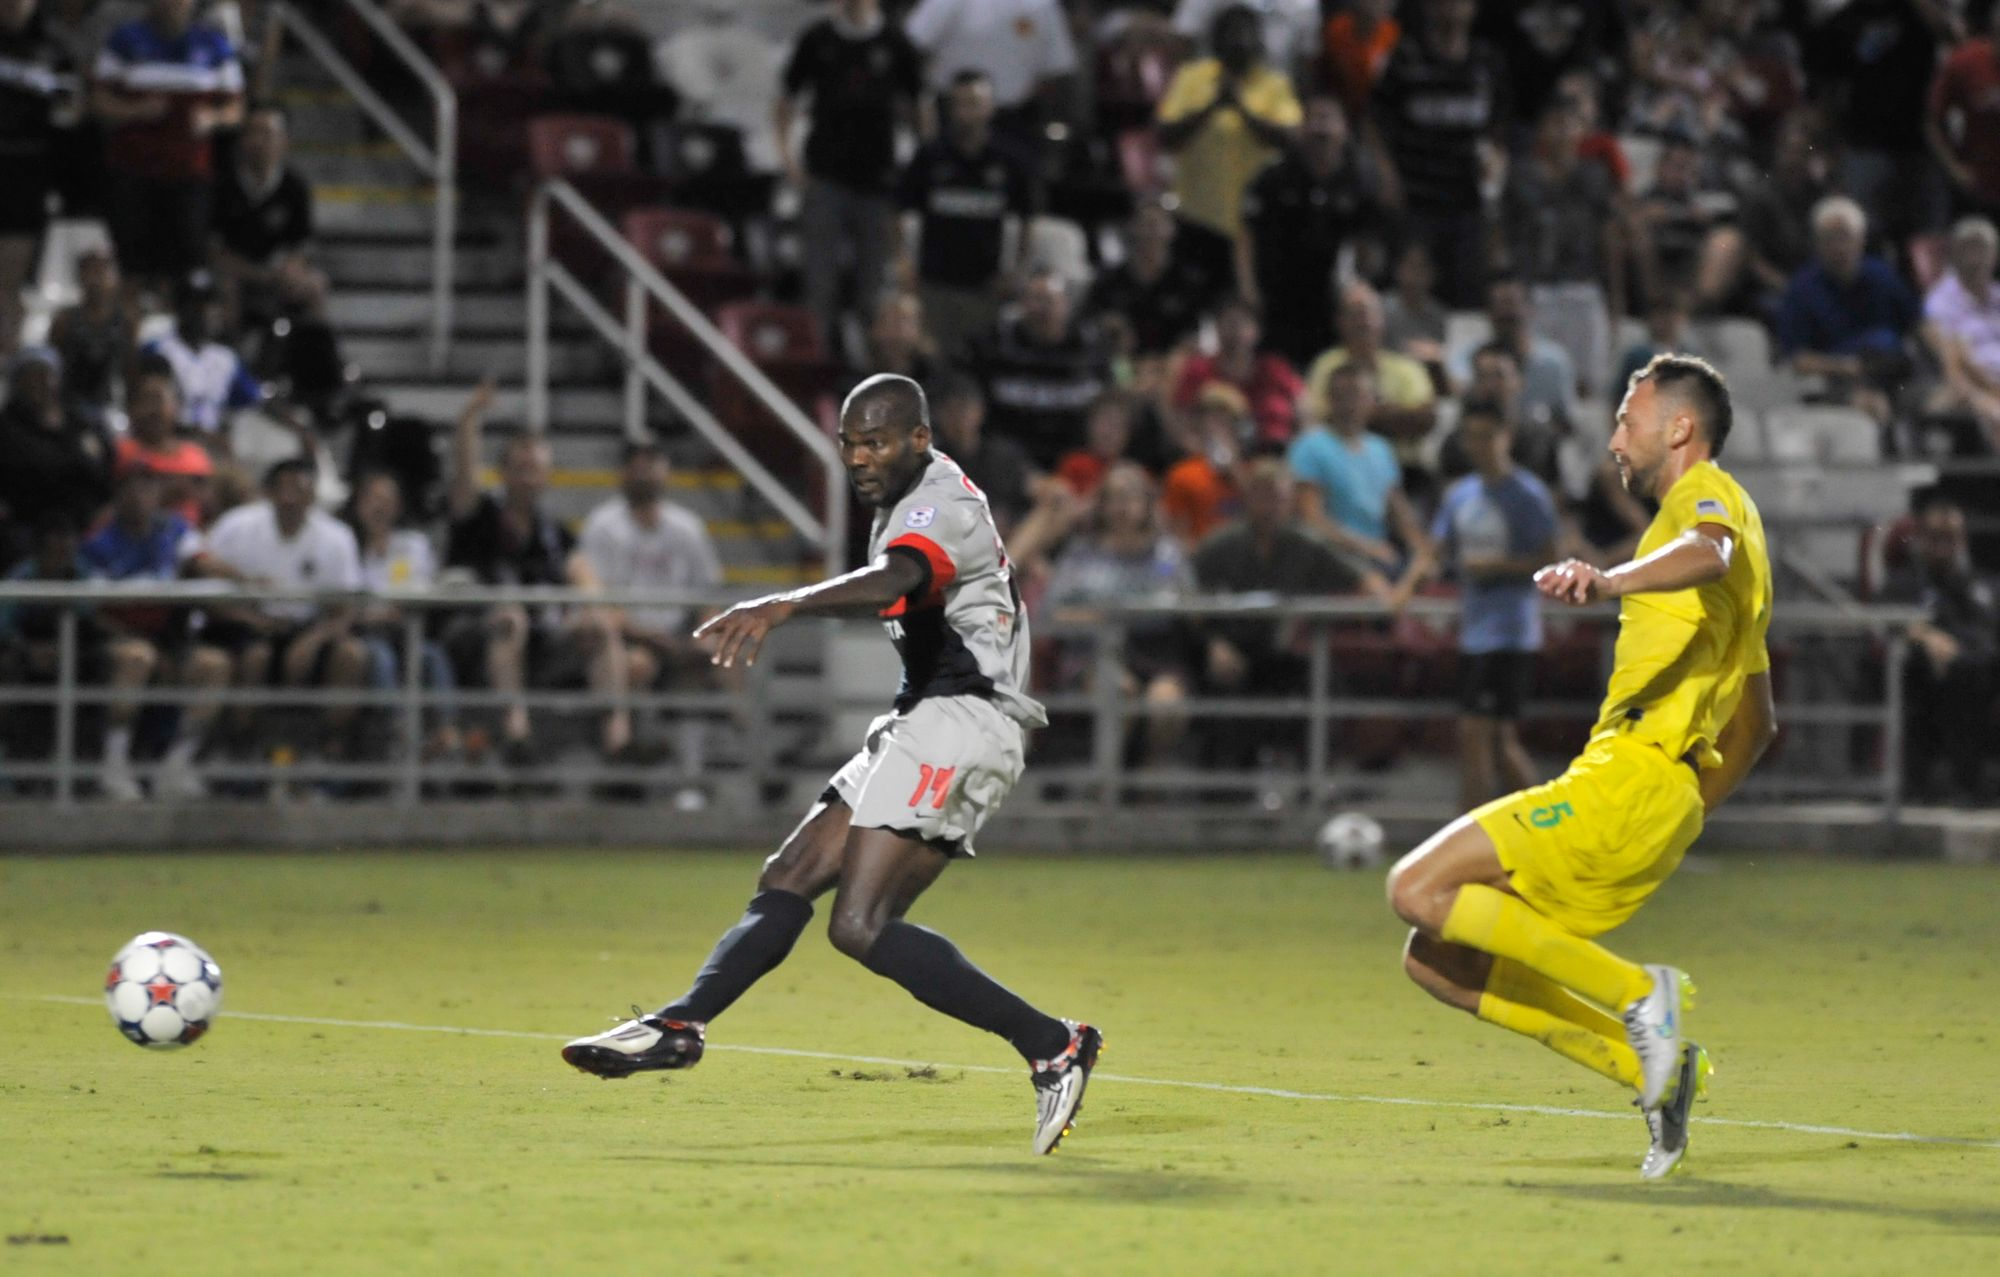 Cummings gets past Antonijevic to take the shot (Photo: San Antonio Scorpions)